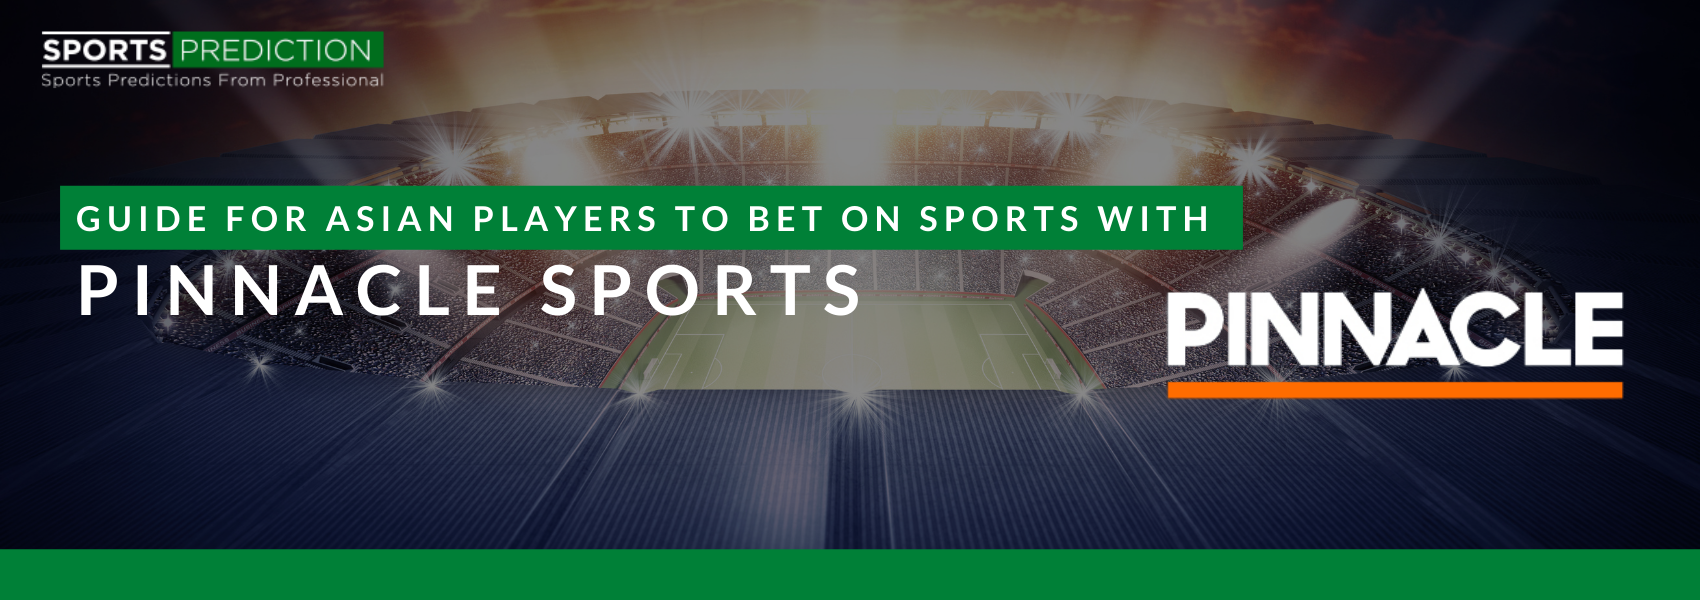 Guide For Asian Players To Bet On Sports With Pinnacle Sports